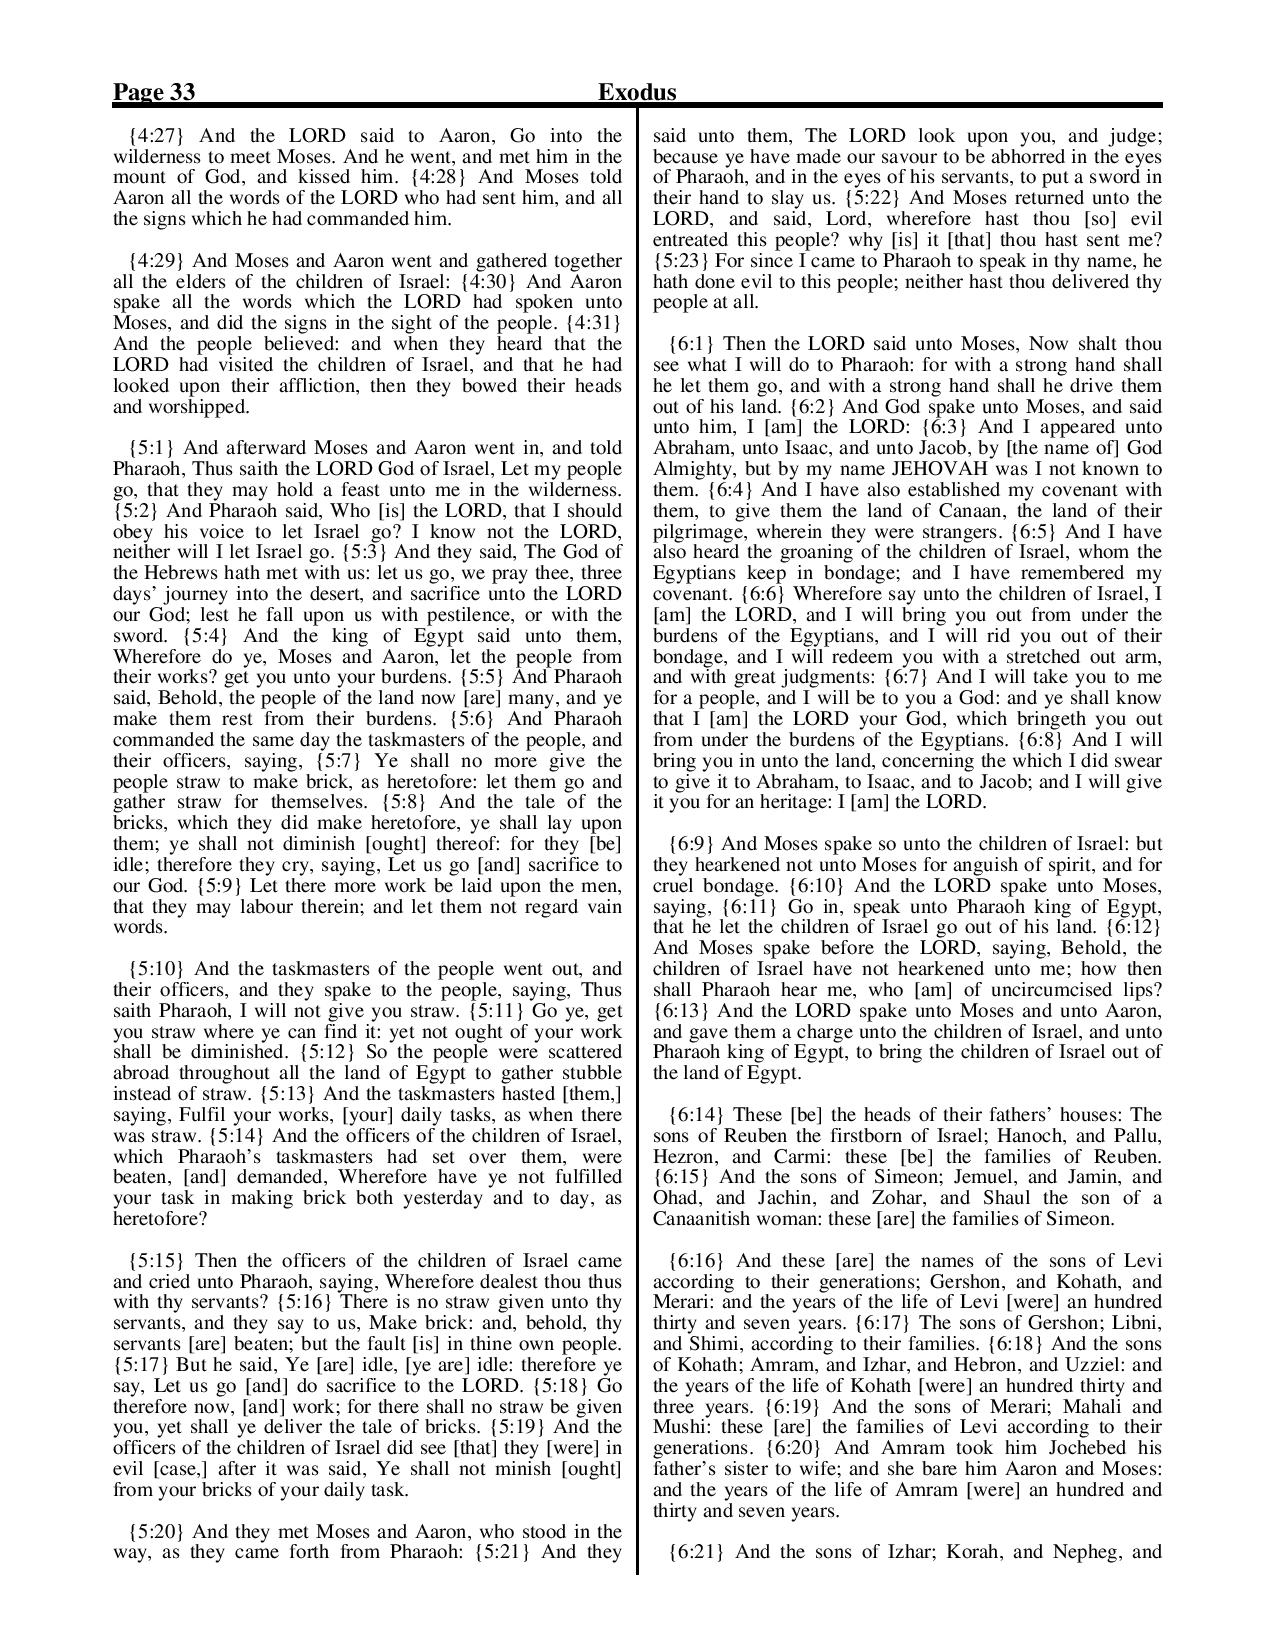 King-James-Bible-KJV-Bible-PDF-page-054